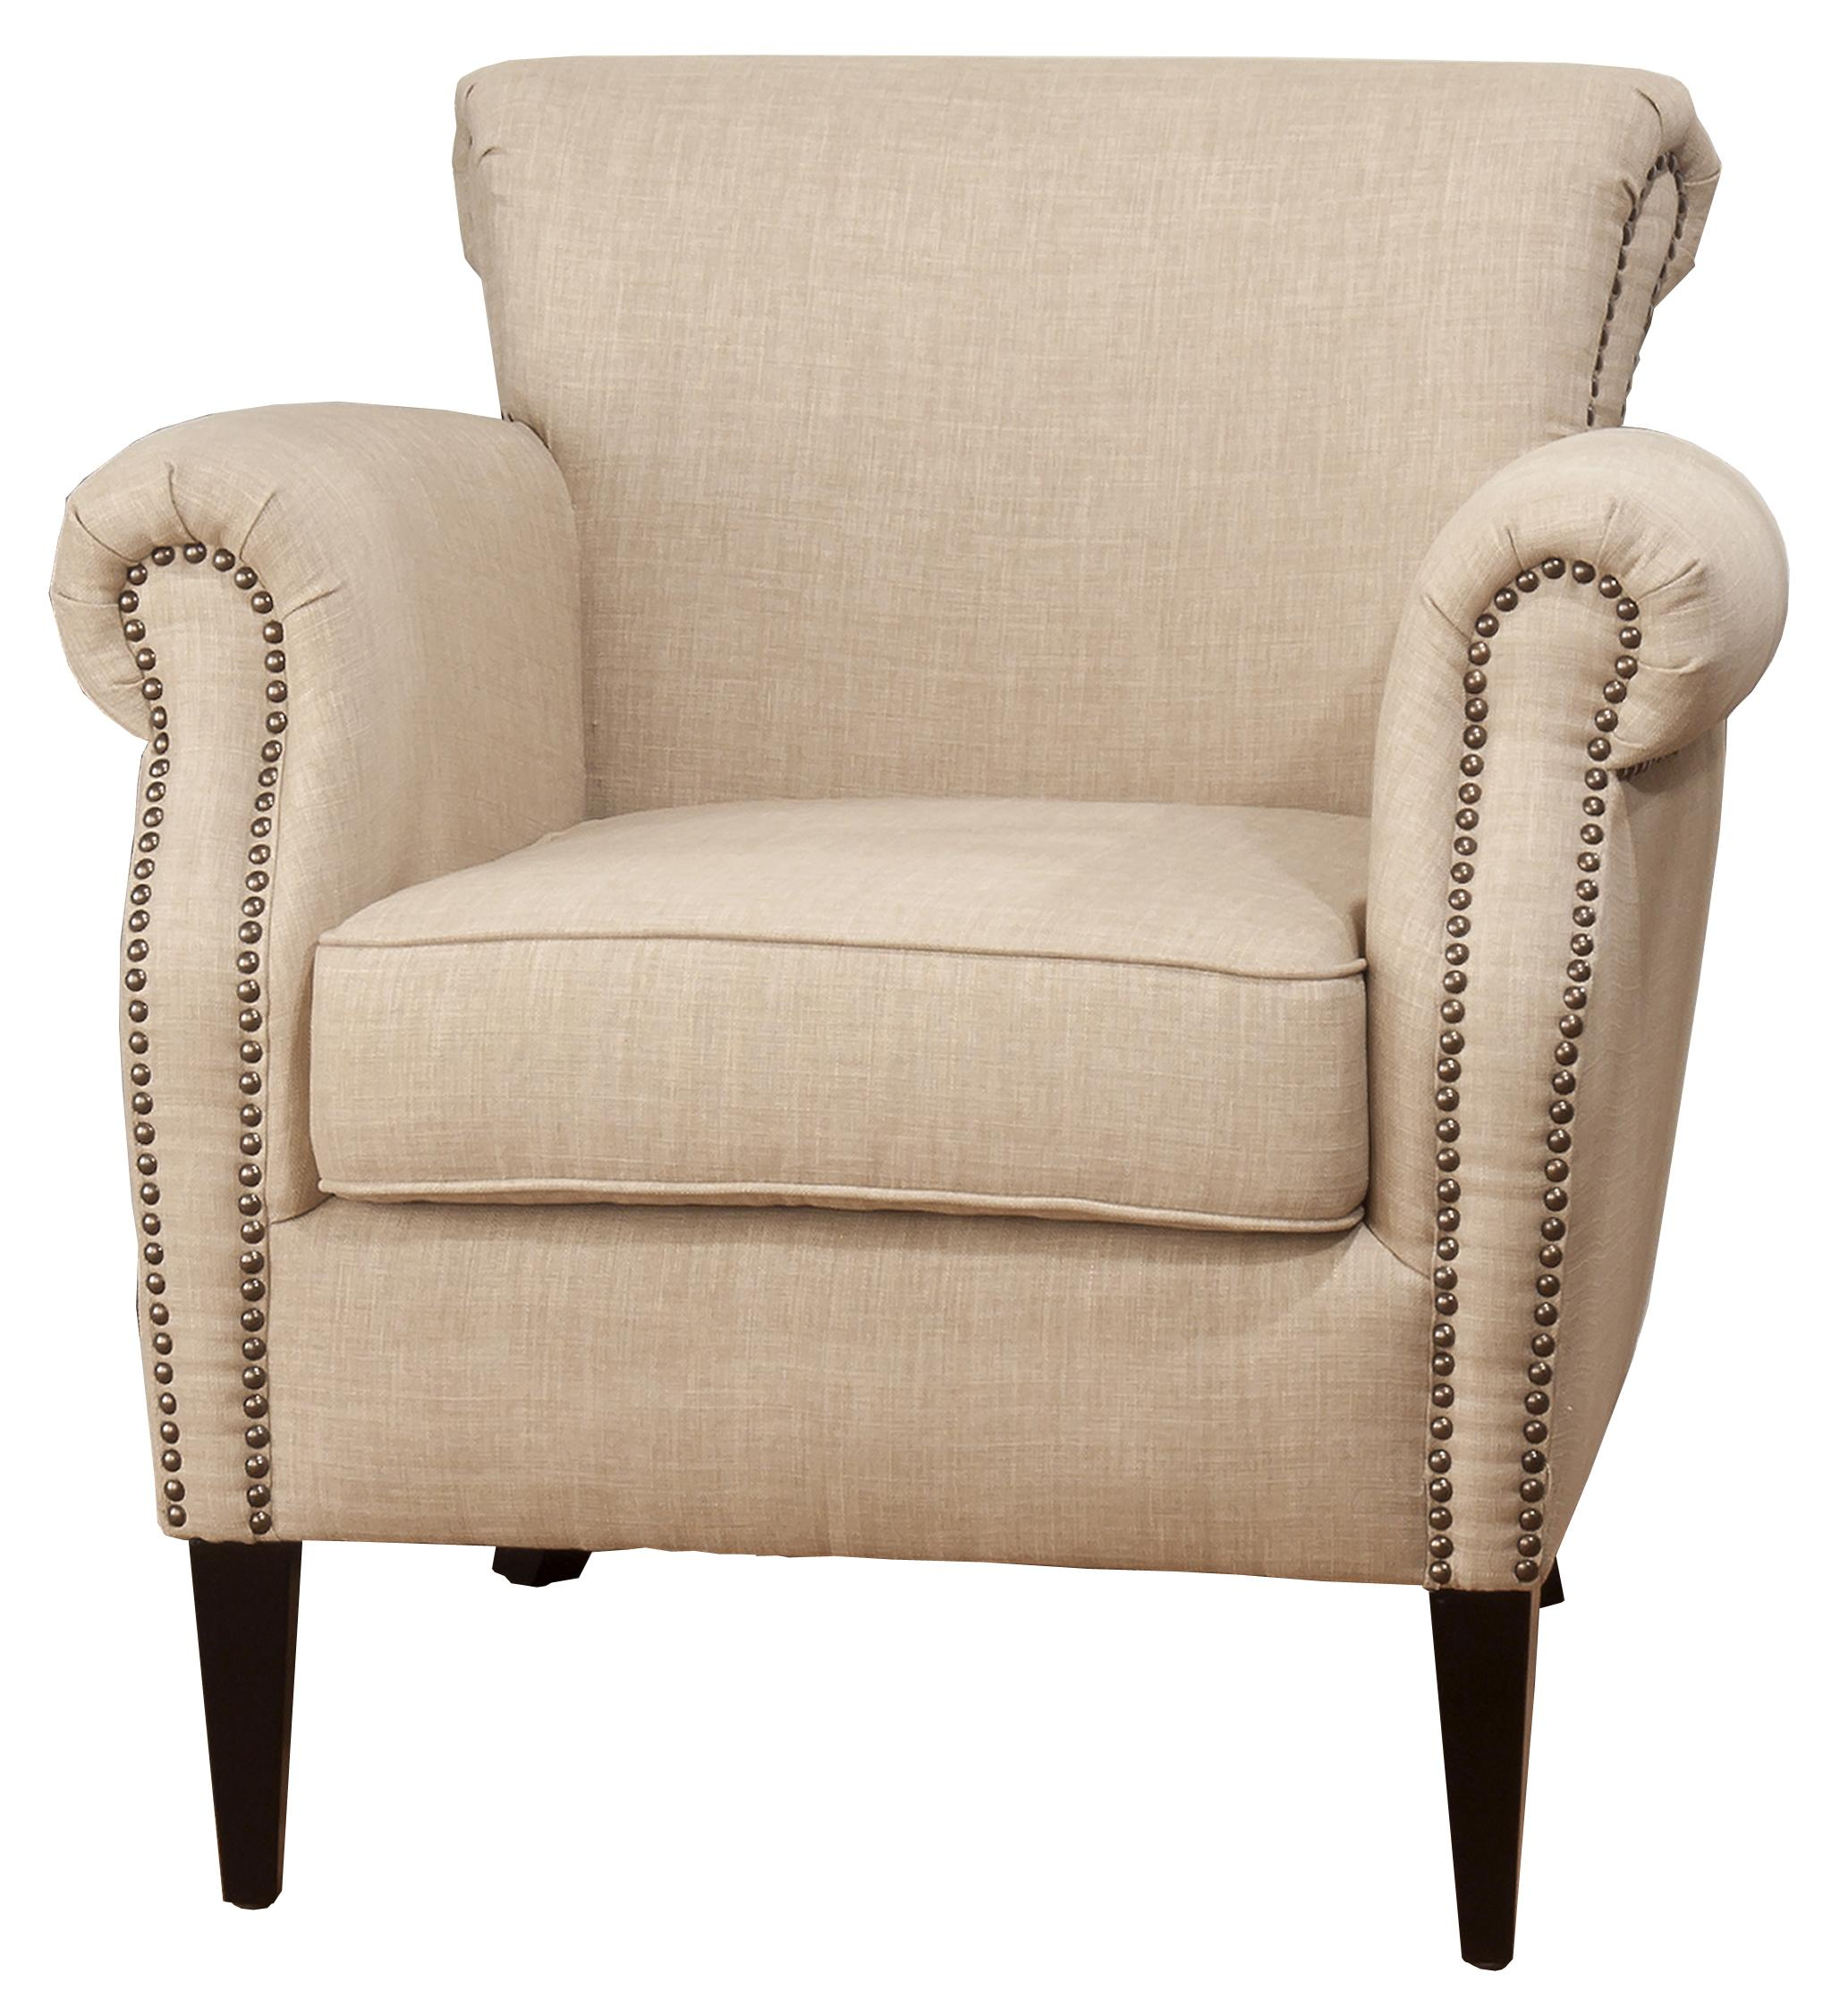 Jofran Upholstered Accent Chairs Wheat Emma Club Chair - Item Number: EMMA-CH-WHEAT